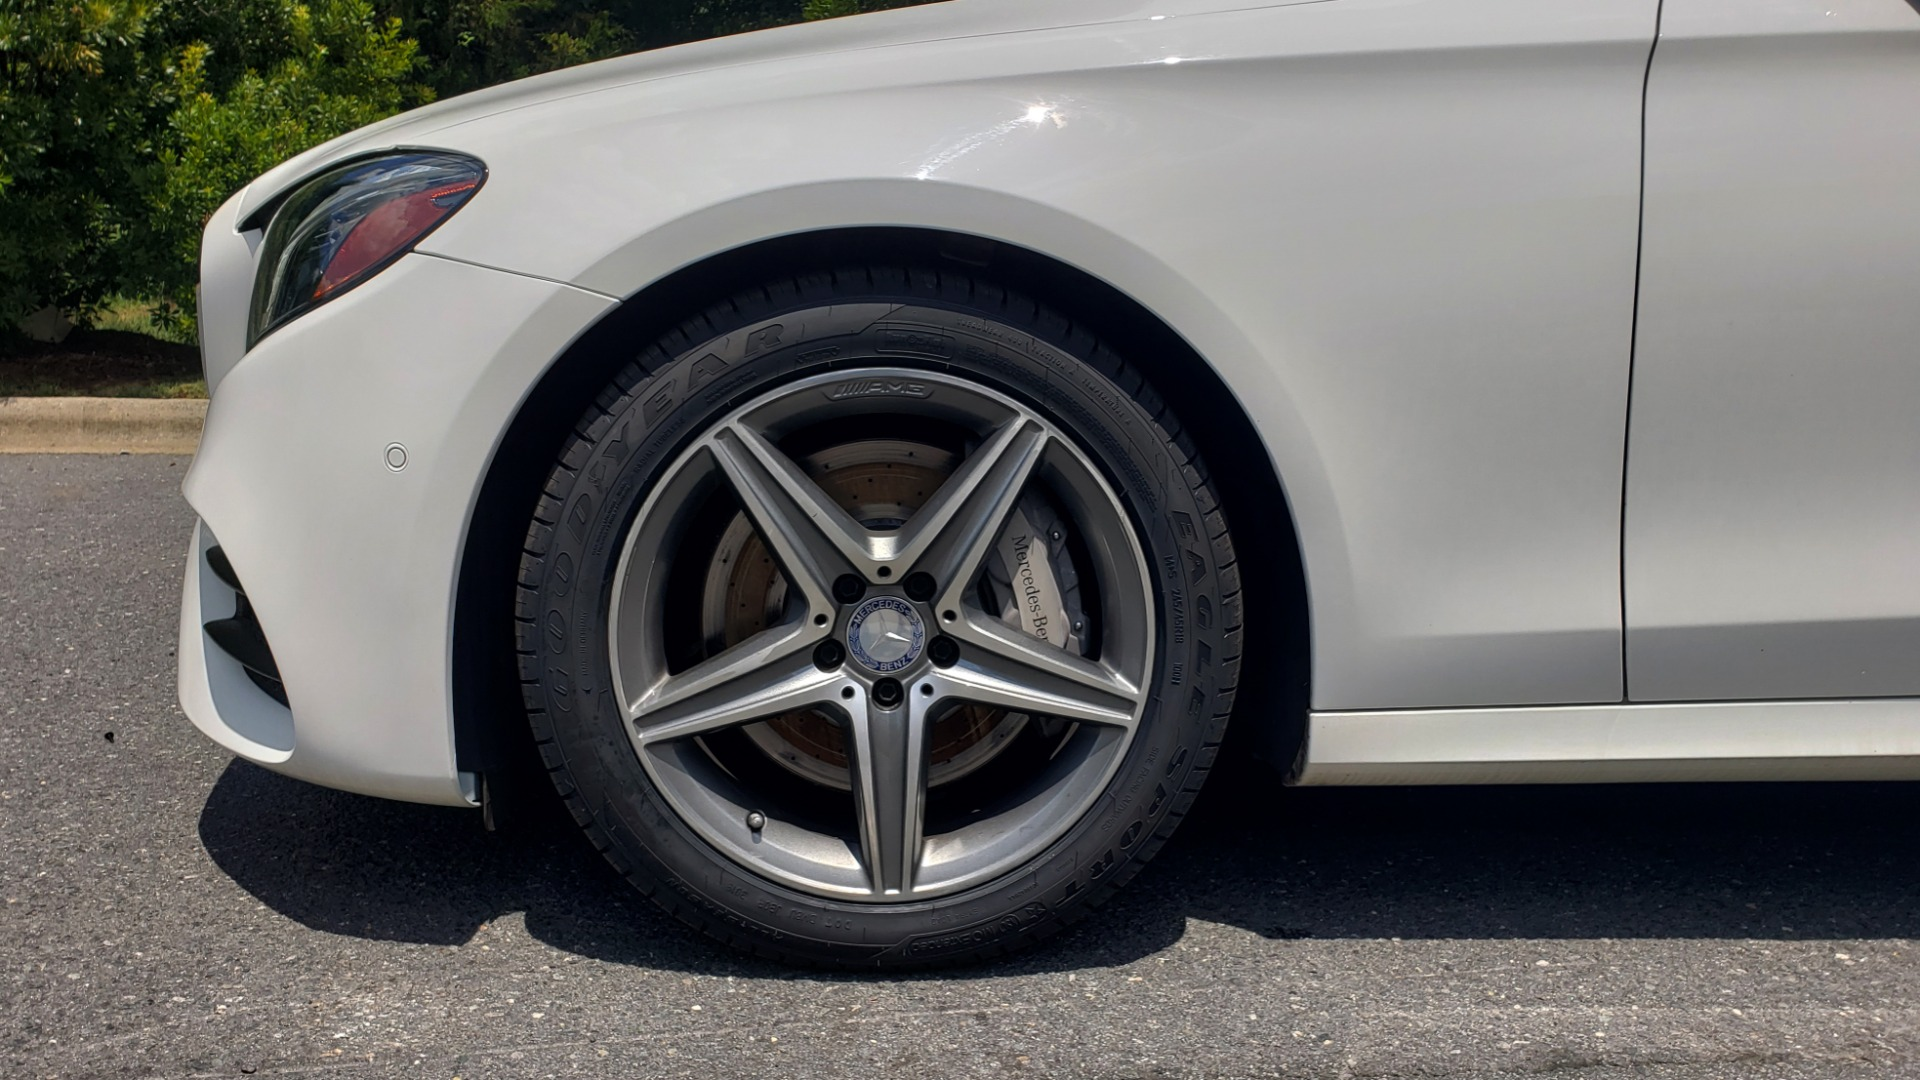 Used 2017 Mercedes-Benz E-CLASS E 300 PREMIUM / SPORT / NAV / SUNROOF / HTD STS / BSM / REARVIEW for sale $27,995 at Formula Imports in Charlotte NC 28227 76